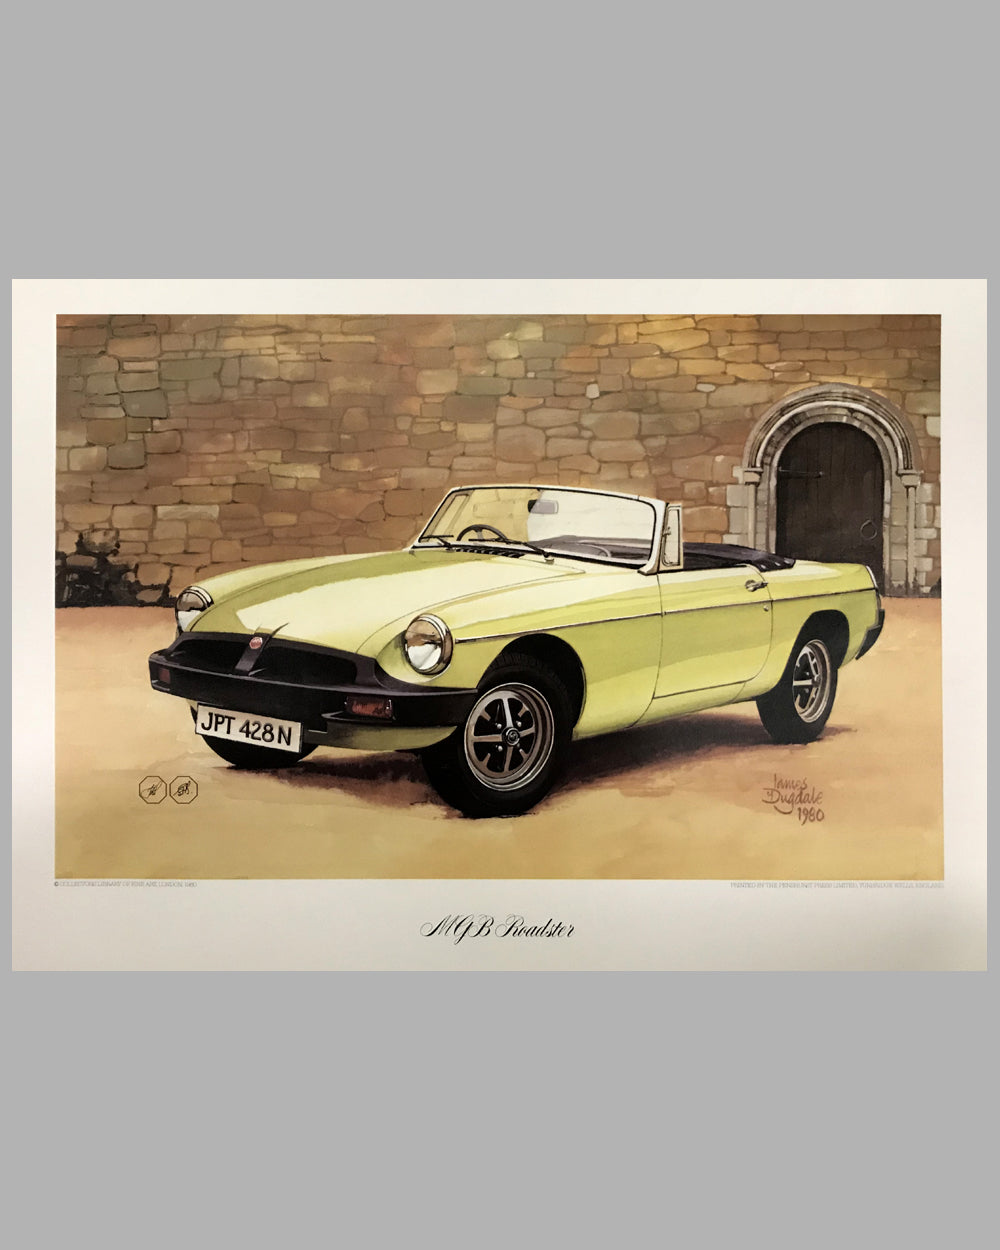 MGB Roadster print by James Dugdale, UK, 1980